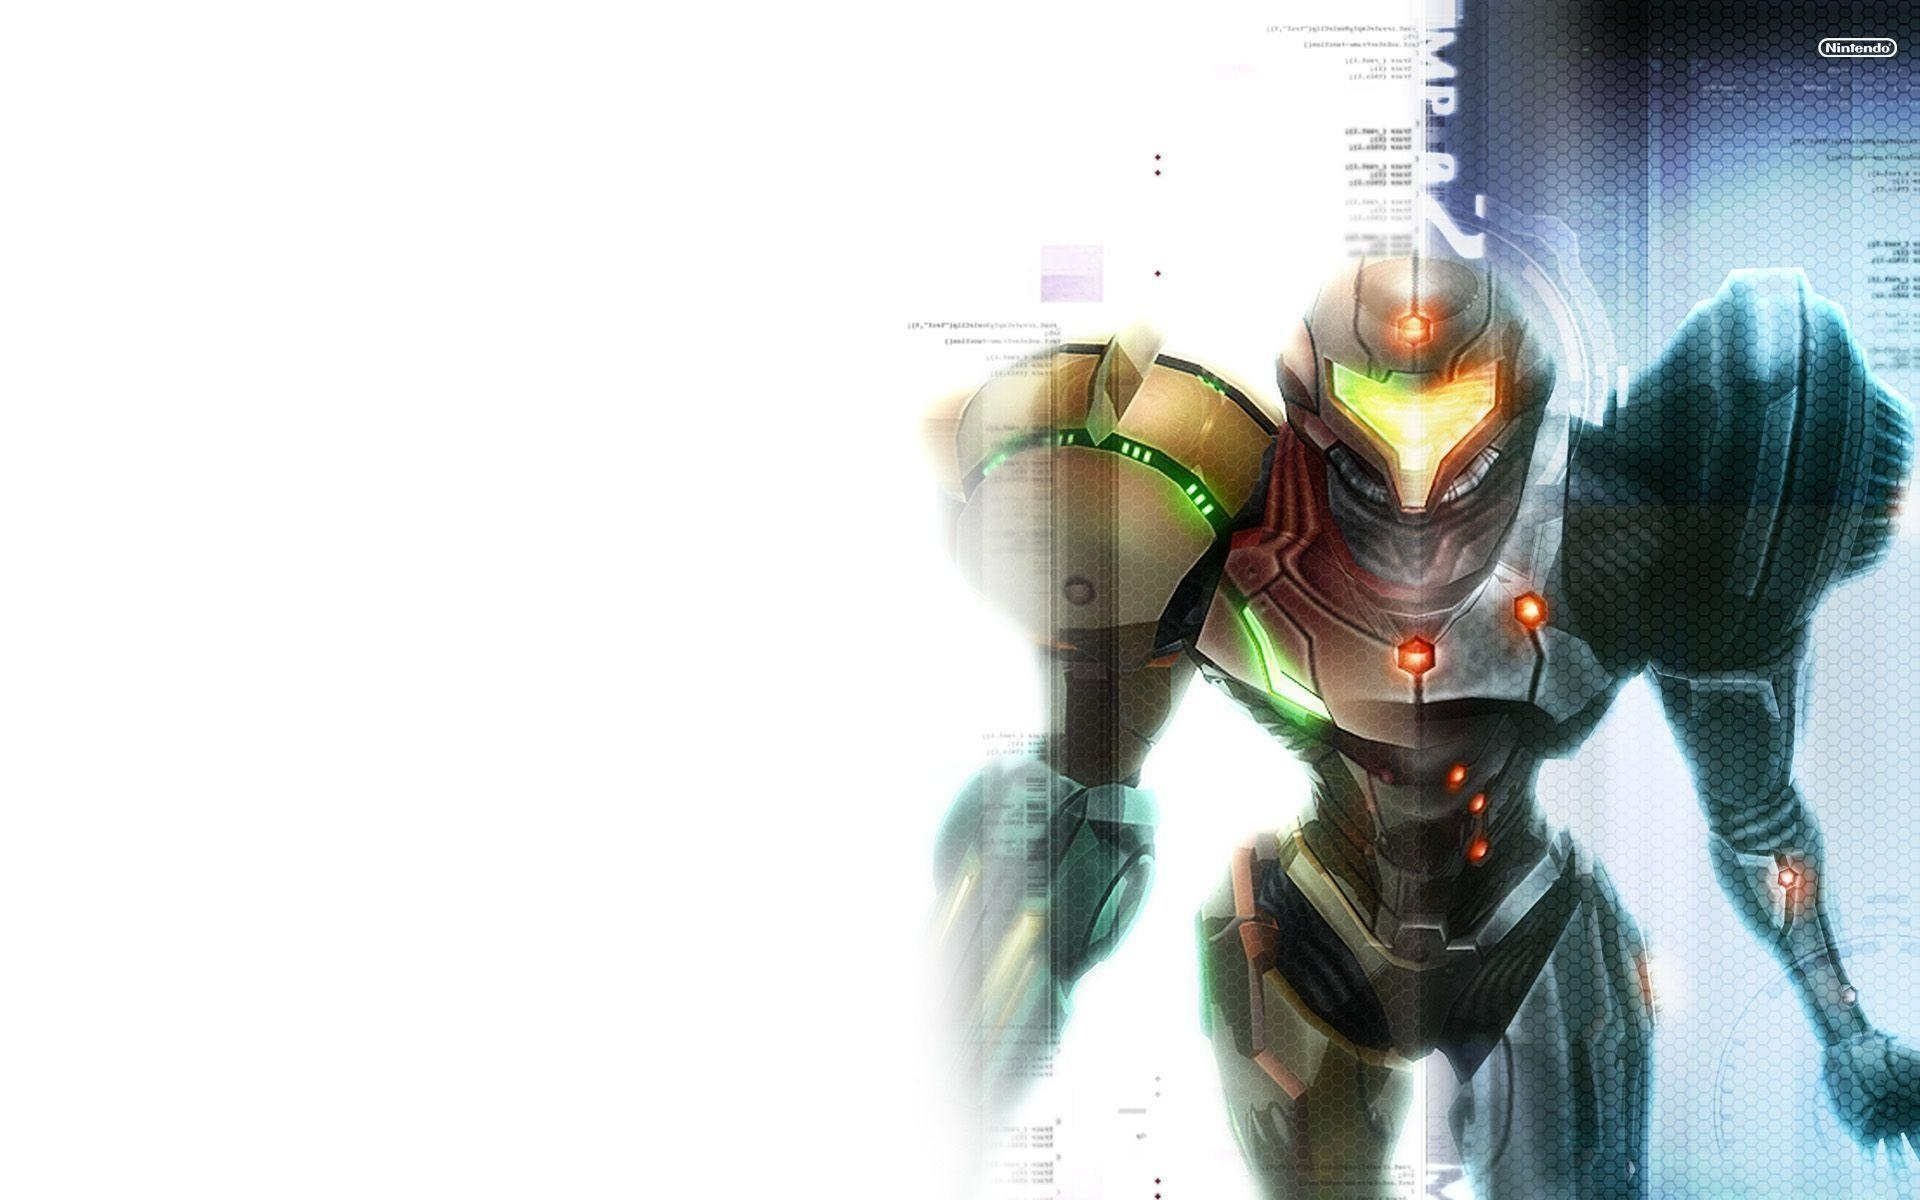 metroid prime wallpapers - wallpaper cave